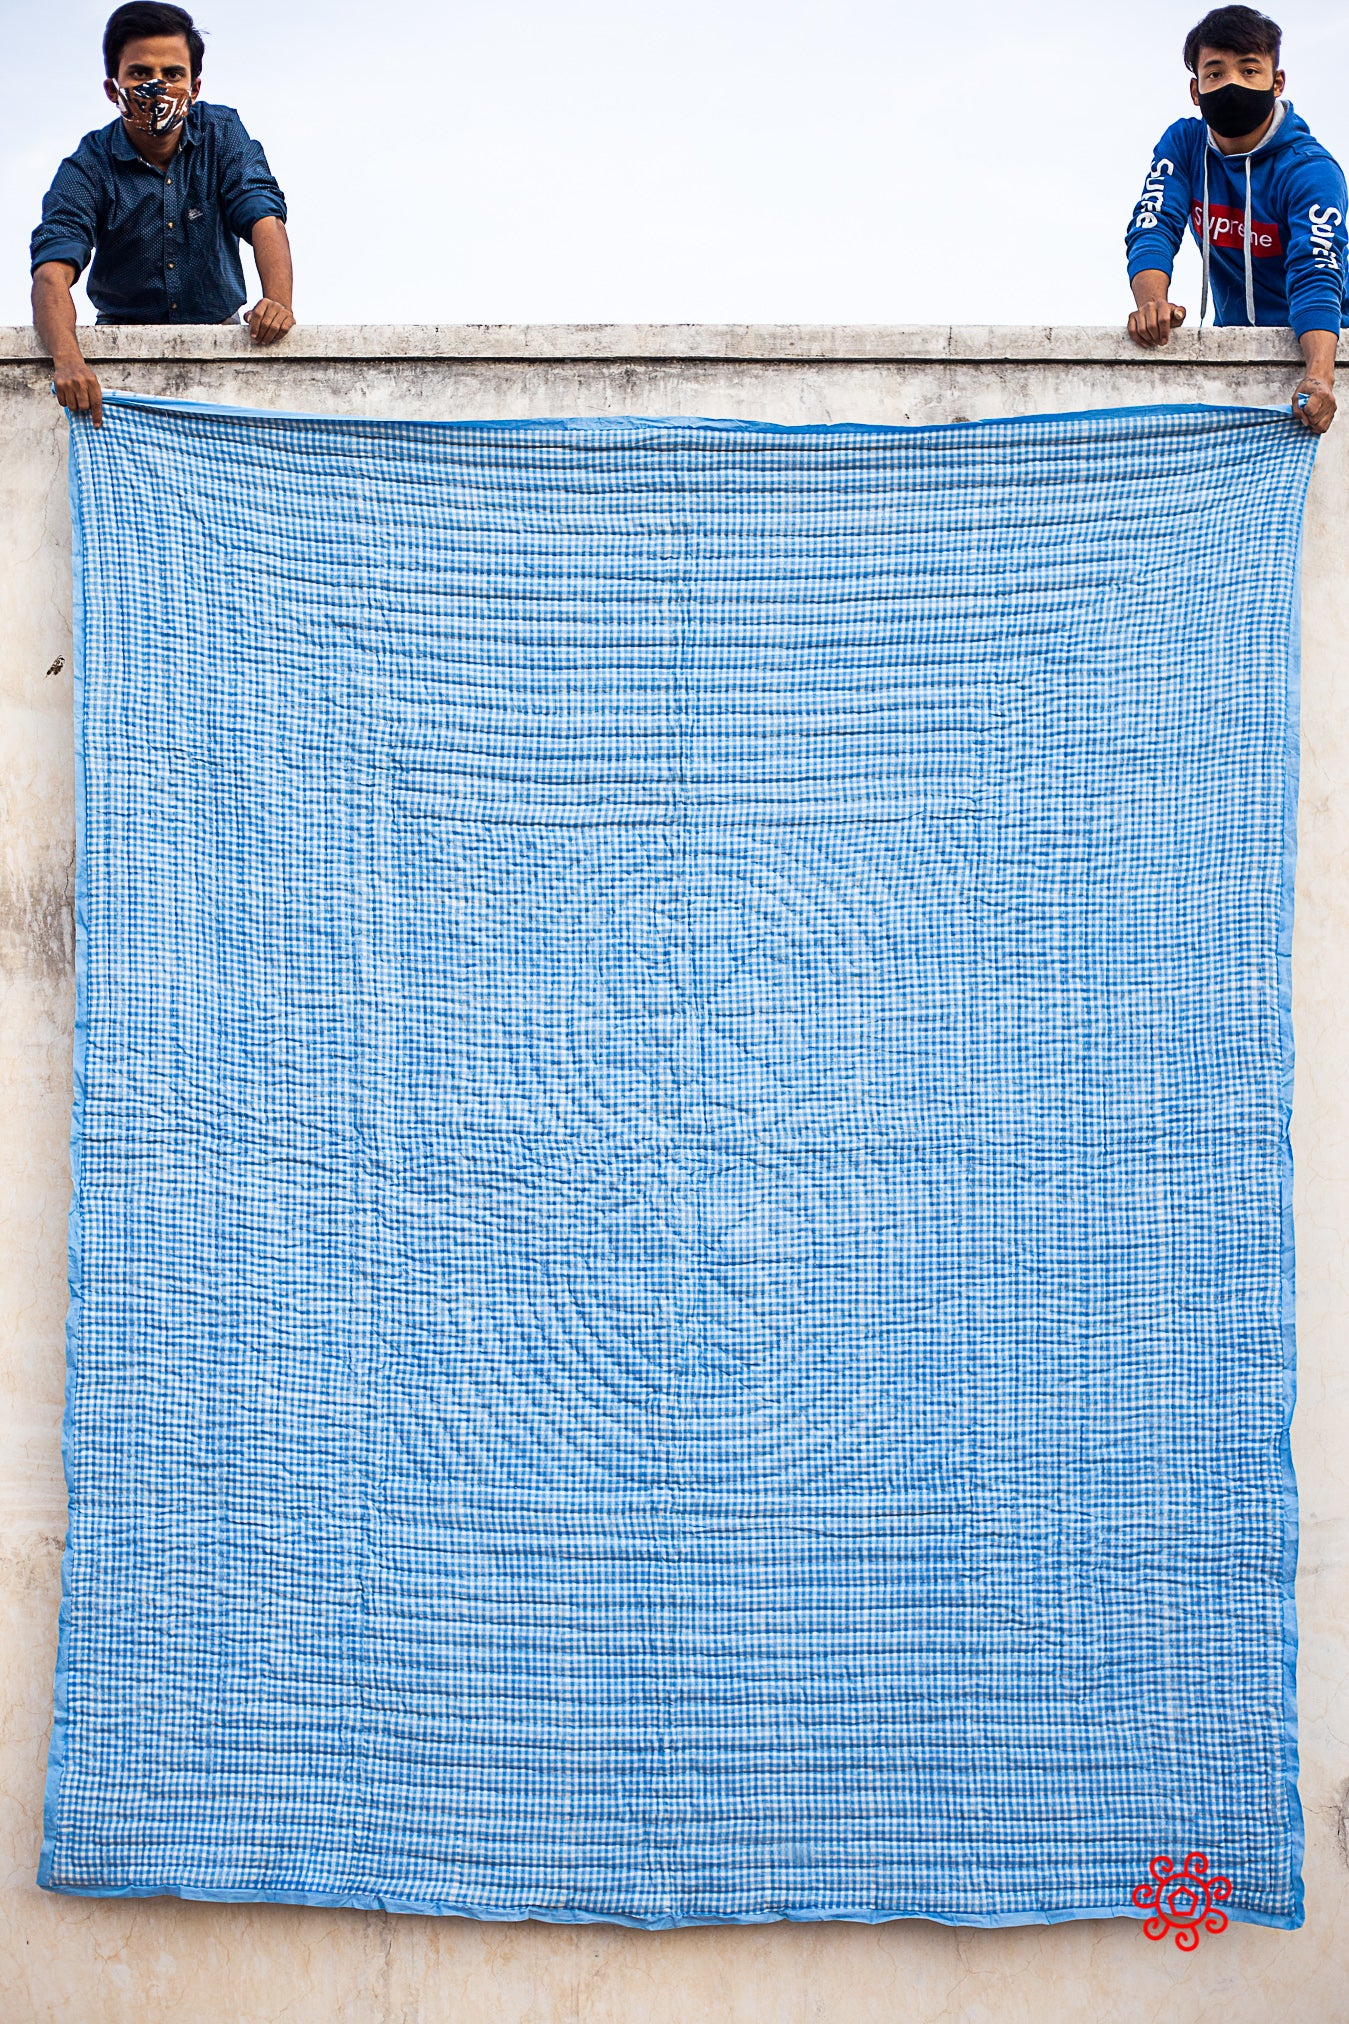 Queen Quilt,100 Percent Handmade, Hand Block printed Quilt, Jaipuri Quilt, Hand Quilted, Natural Cotton filling, Check Rich Blue QBP 407